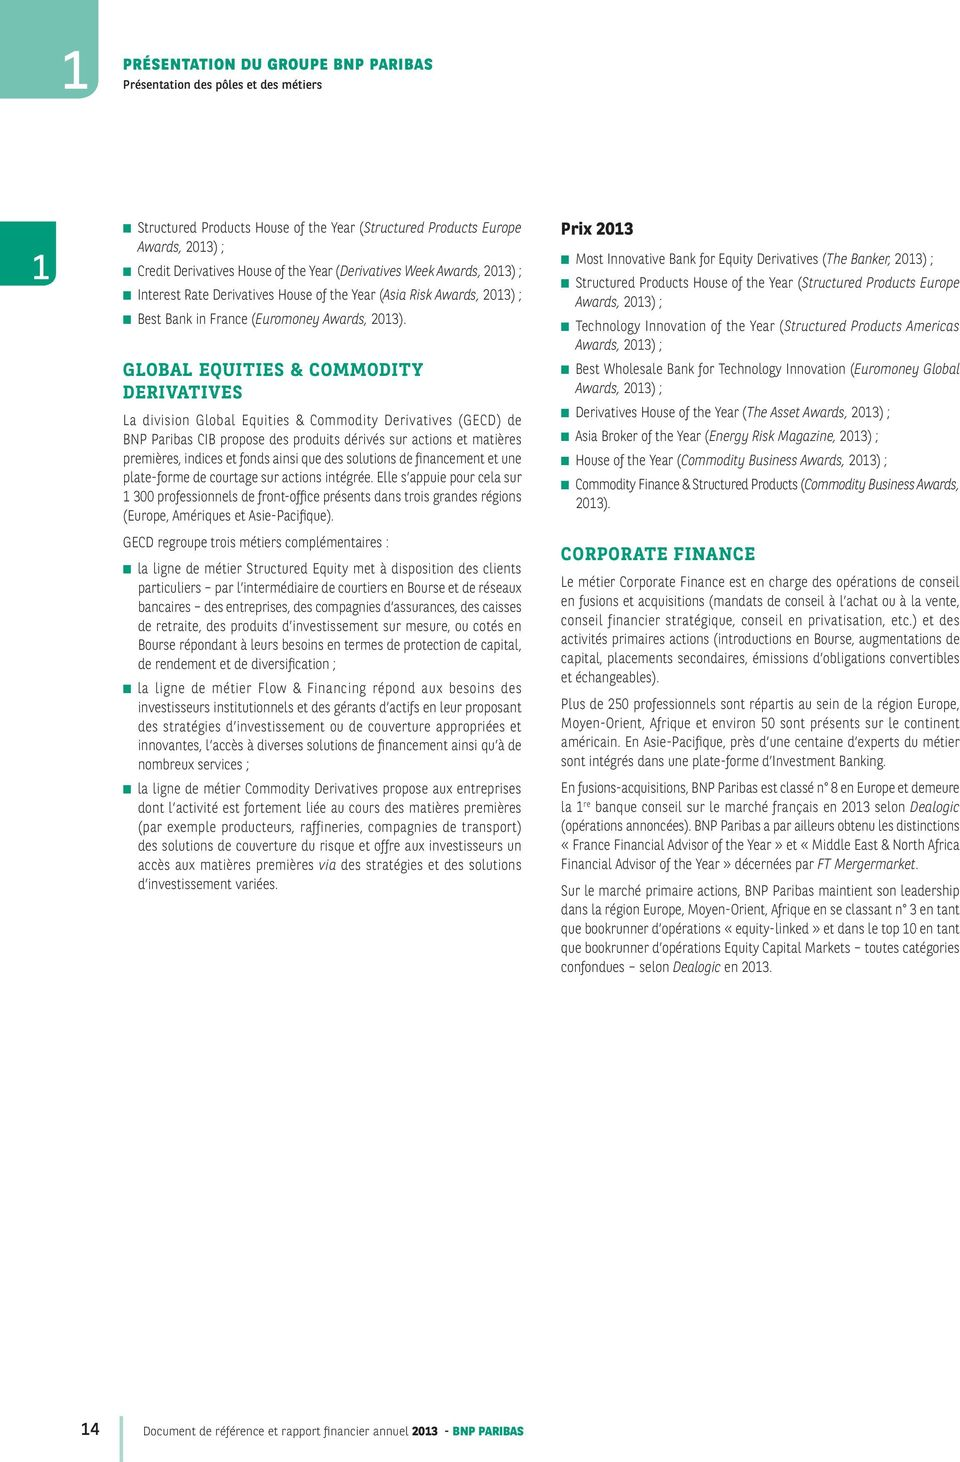 GLOBAL EQUITIES & COMMODITY DERIVATIVES La division Global Equities & Commodity Derivatives (GECD) de BNP Paribas CIB propose des produits dérivés sur actions et matières premières, indices et fonds